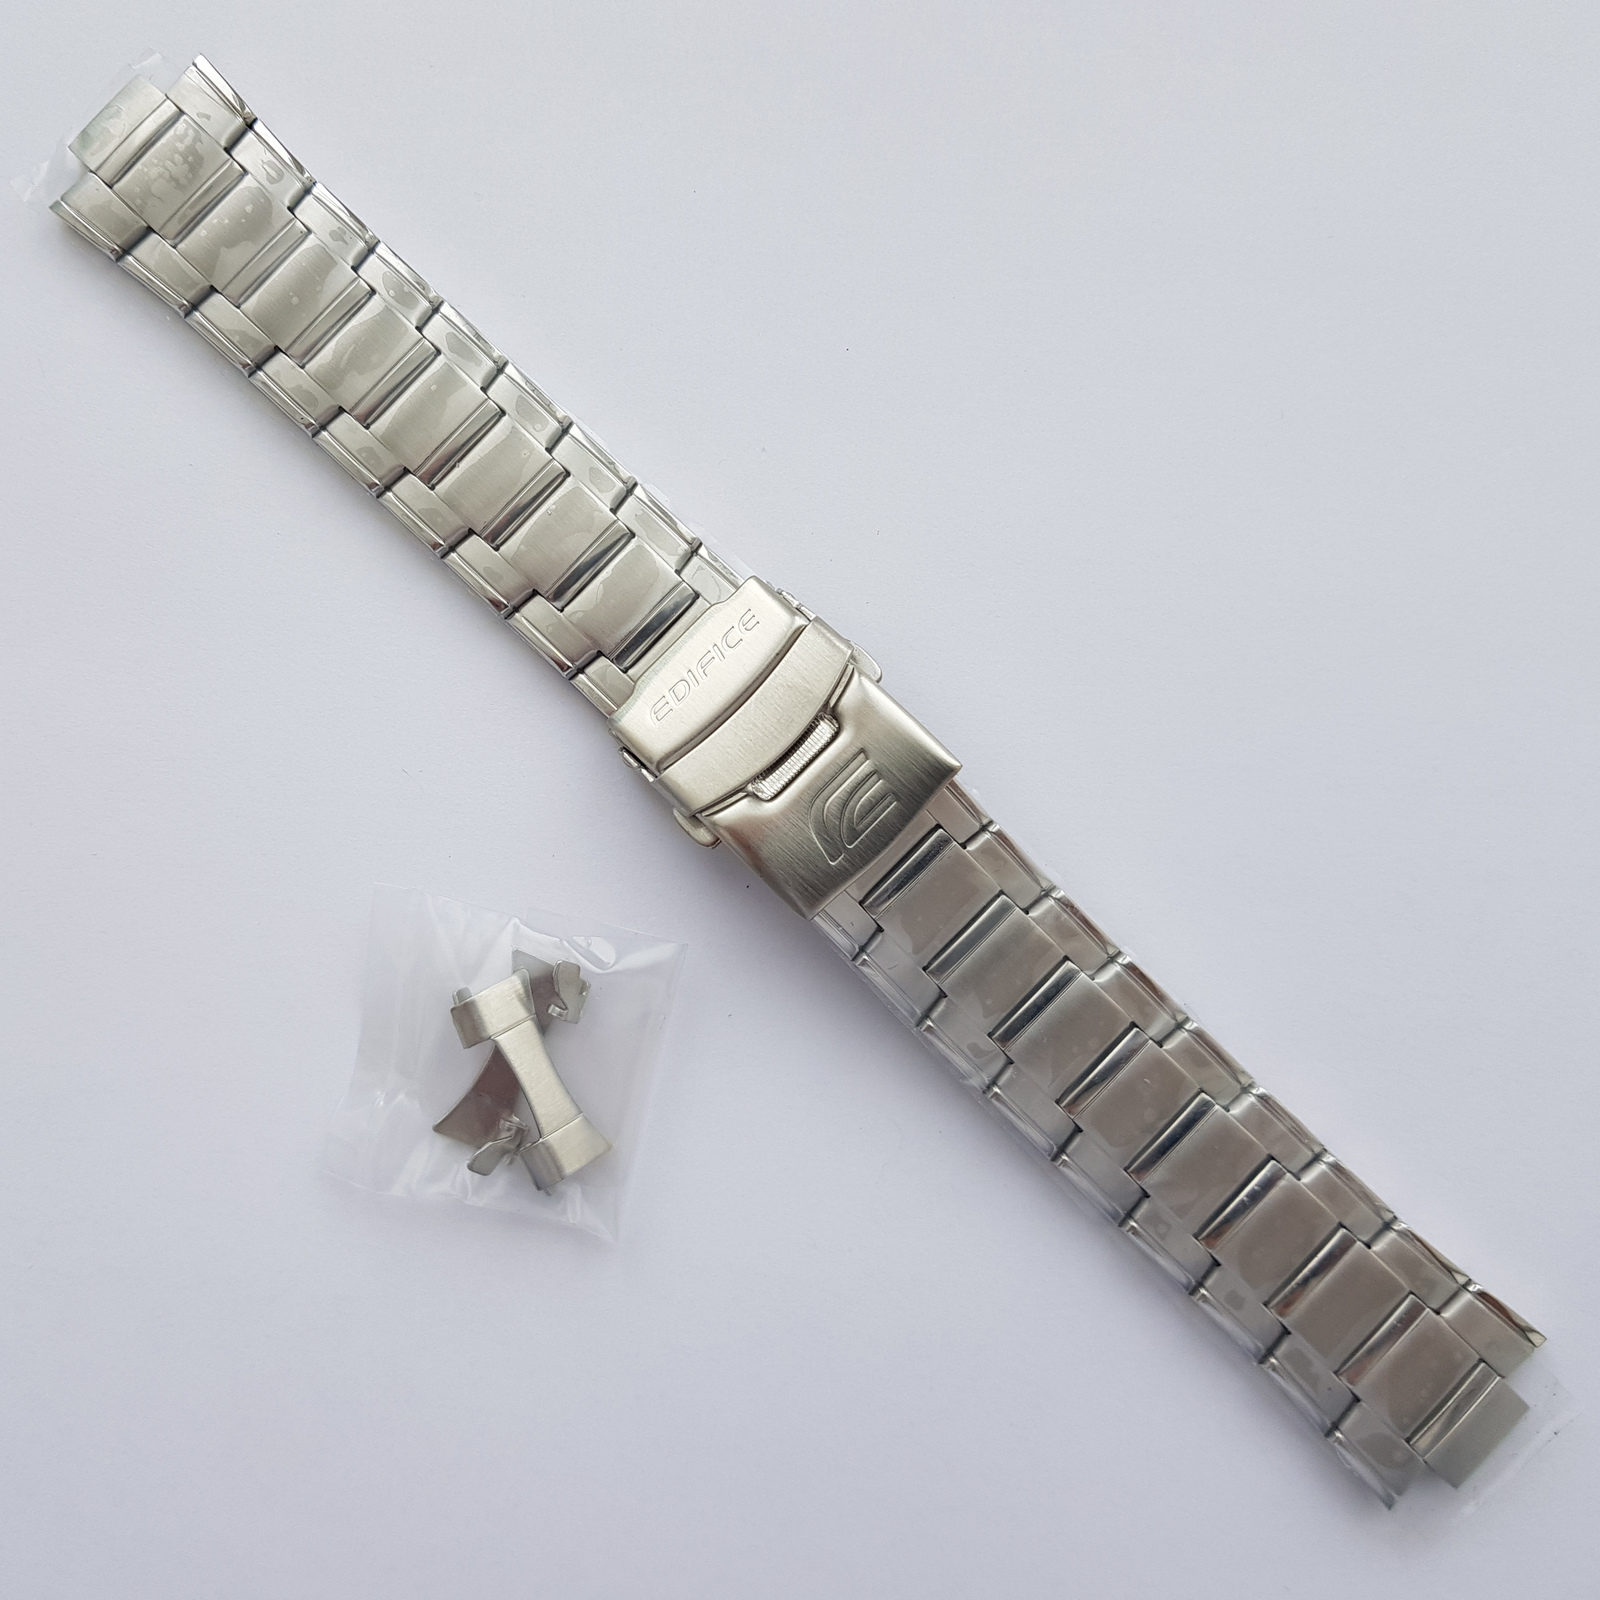 Primary image for Genuine Replacement Watch Band 20mm Stainless Steel Bracelet Casio EFA-121D-1A